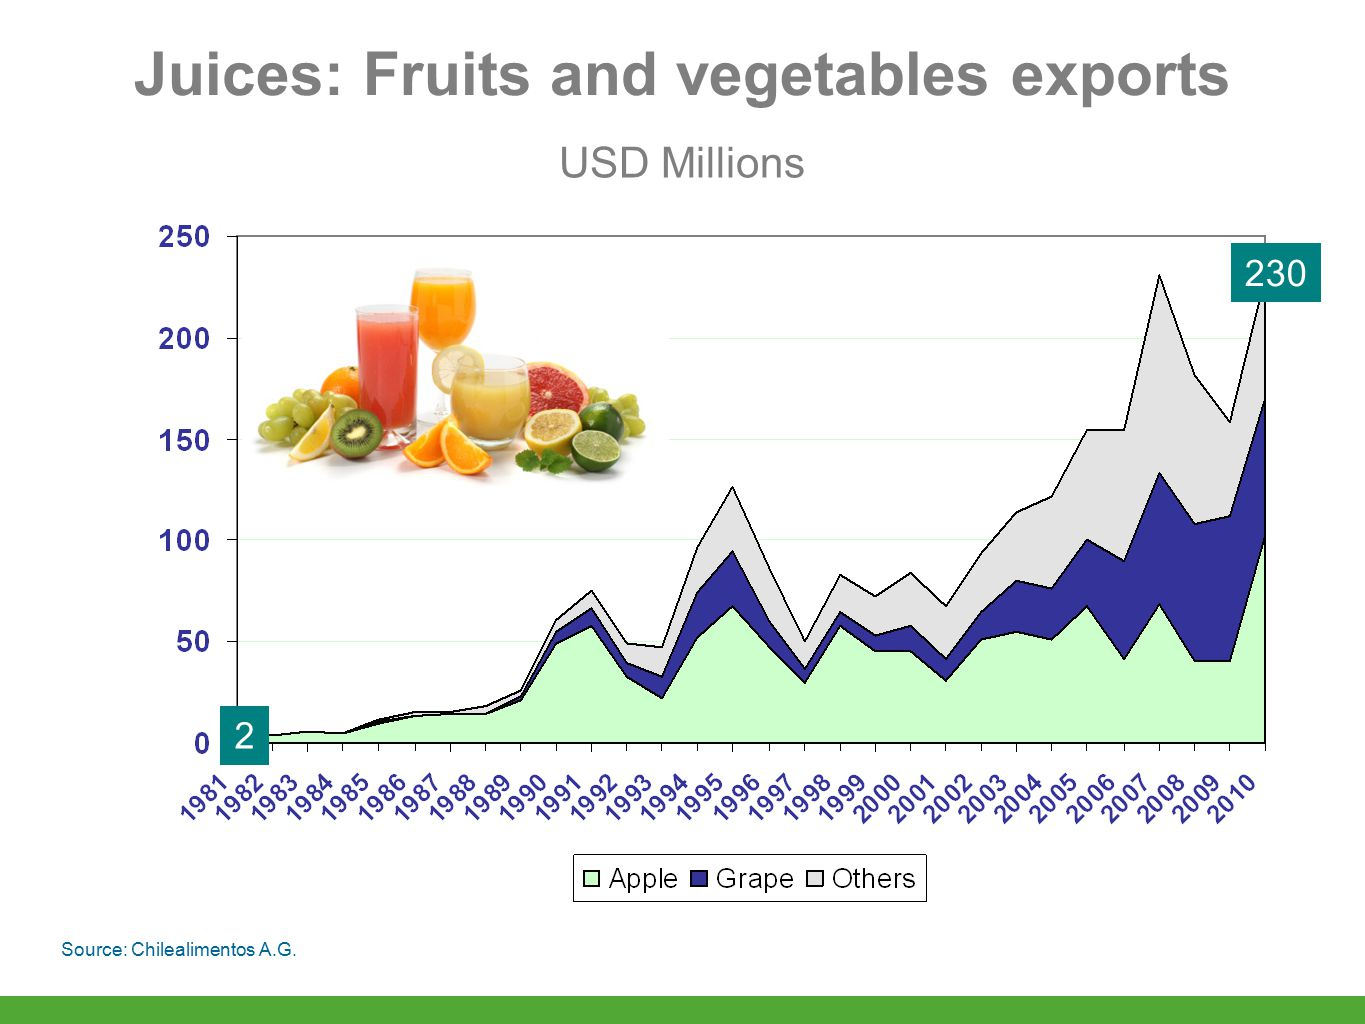 Juices: Fruits and vegetables exports Source: Chilealimentos A.G. 2 230 USD Millions